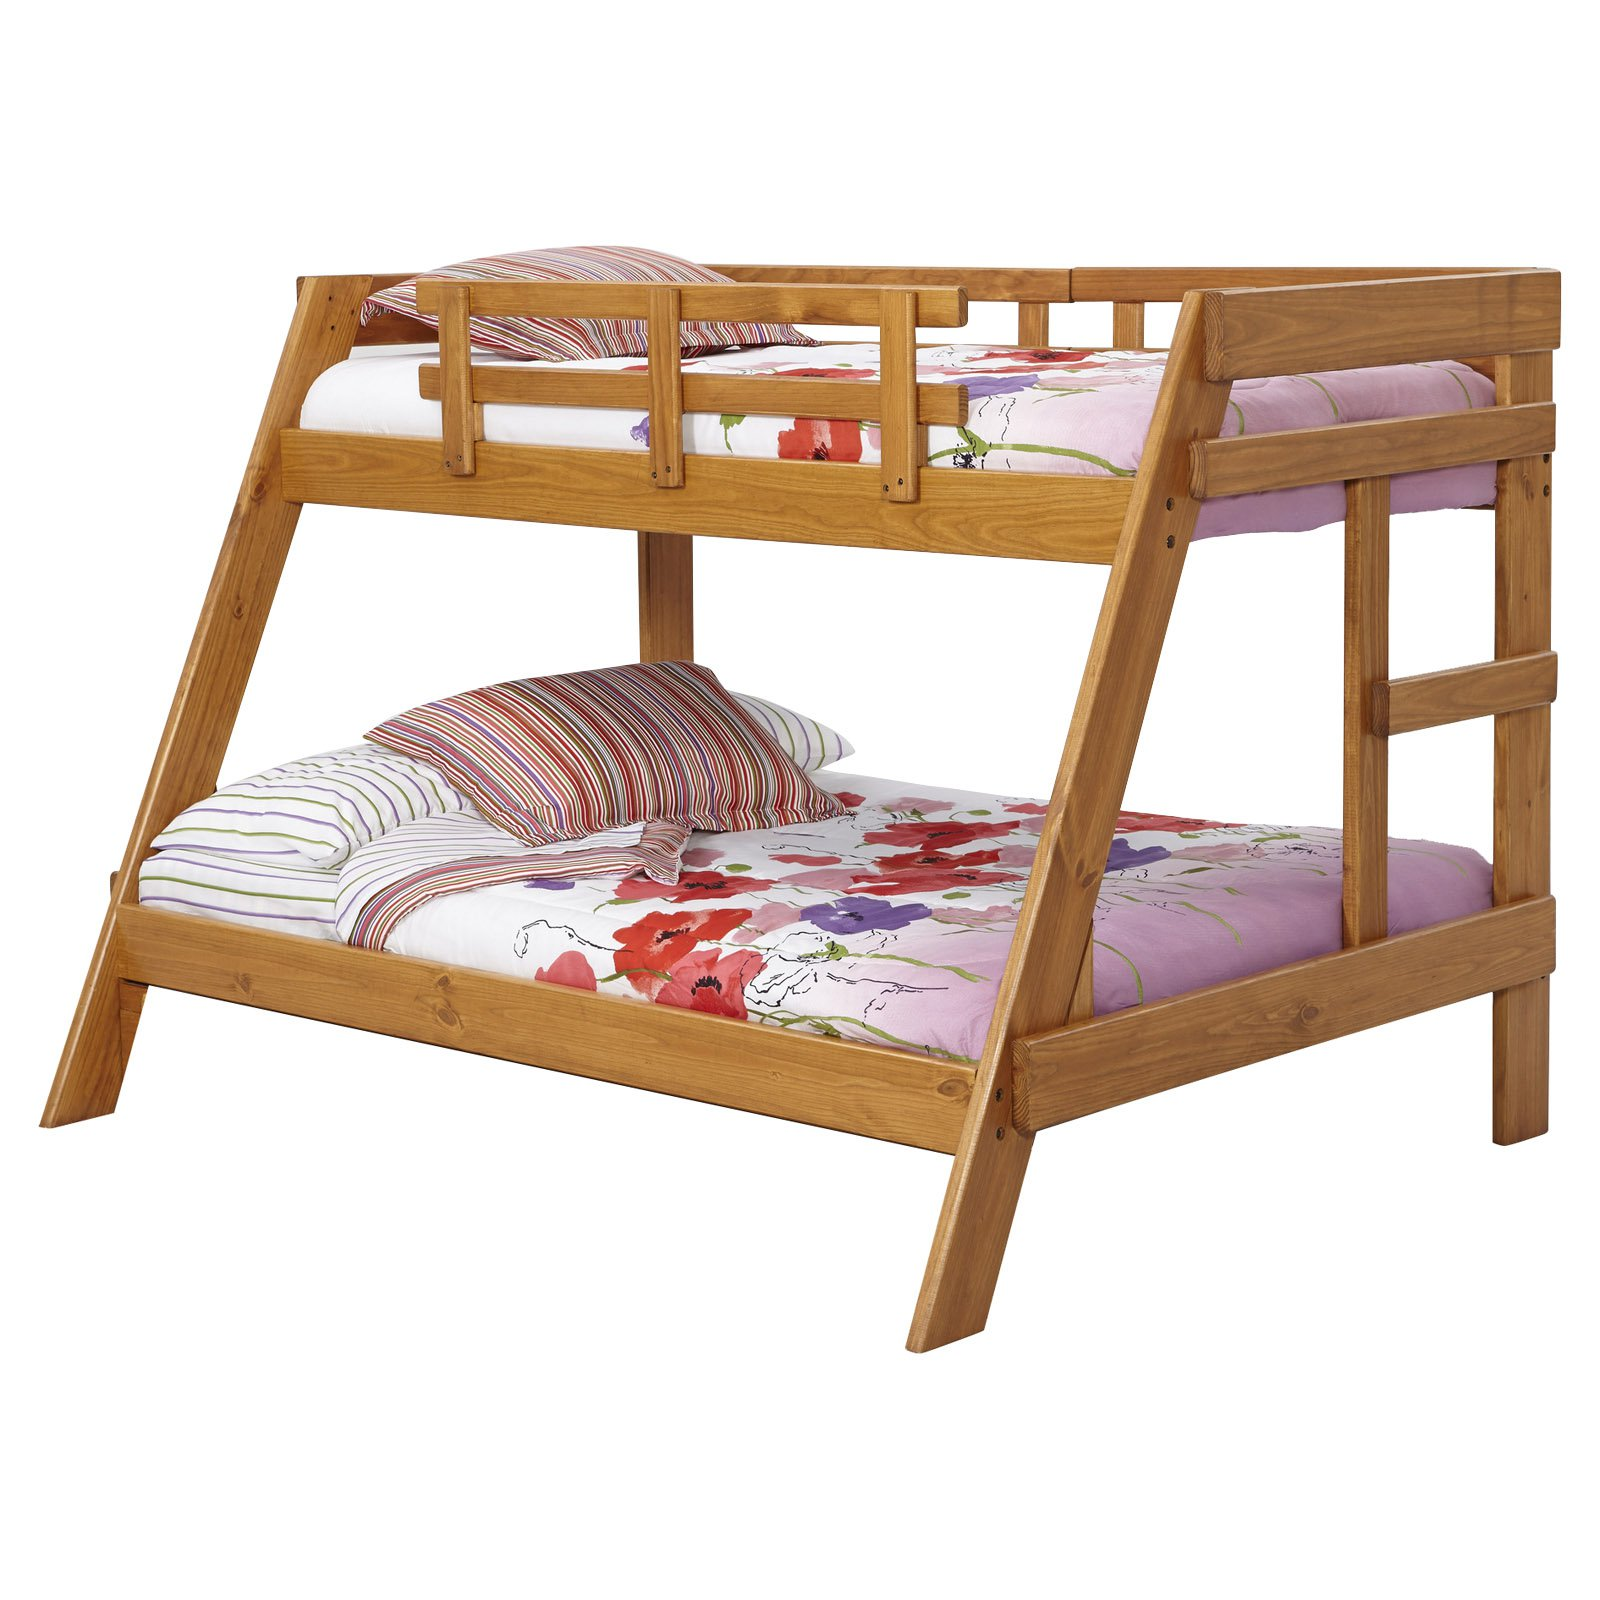 Woodcrest Heartland Twin Over Full Bunk Bed Walmart Com